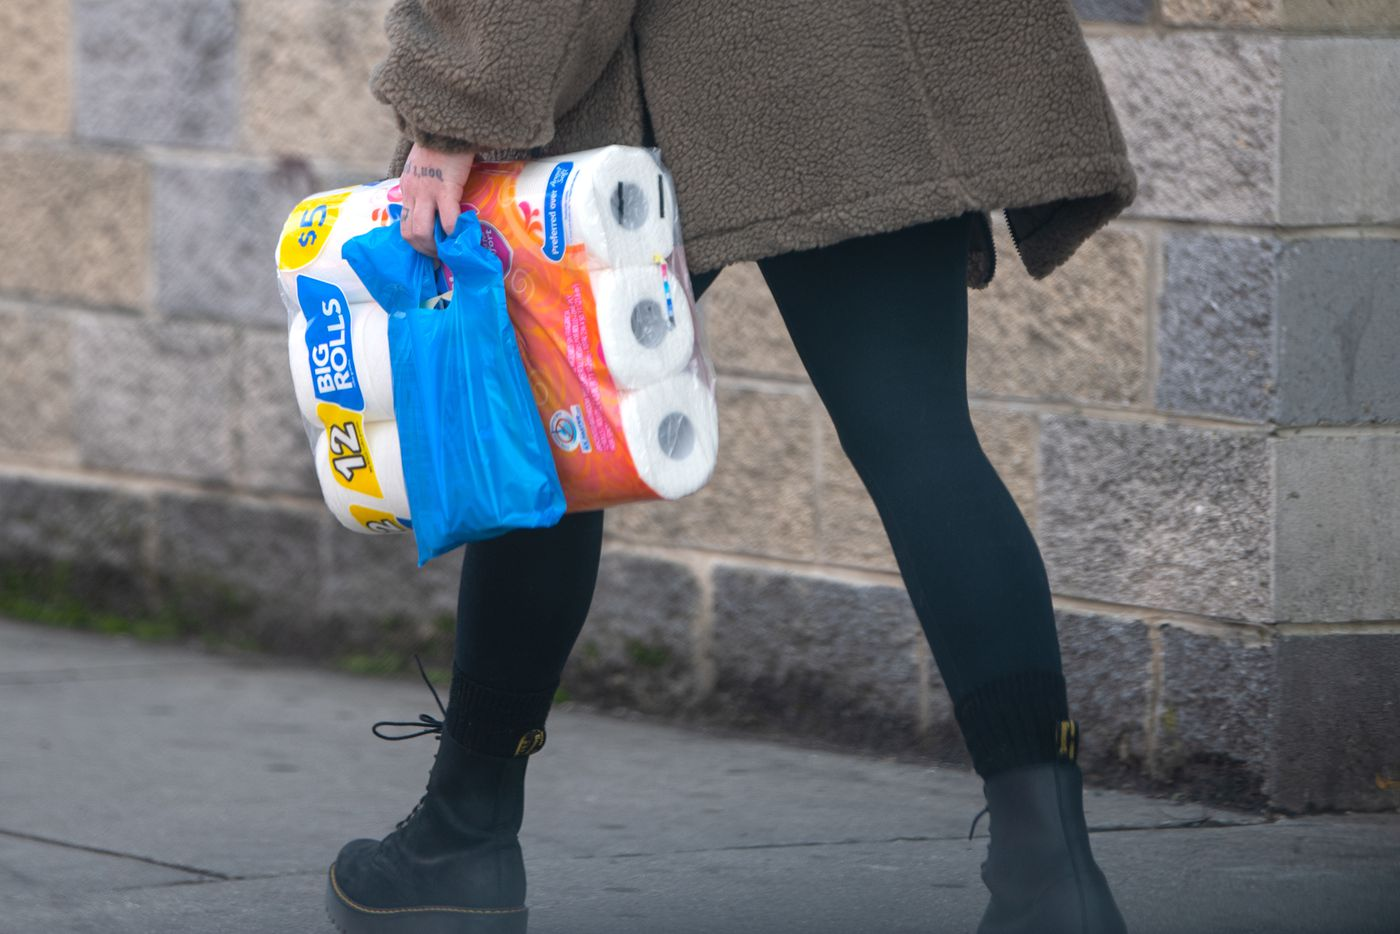 An unidentified woman walks carrying toilet paper rolls in Philadelphia, Pa. Tuesday, March 17, 2020. The household staple has consistently been out of stock during the coronavirus outbreak.